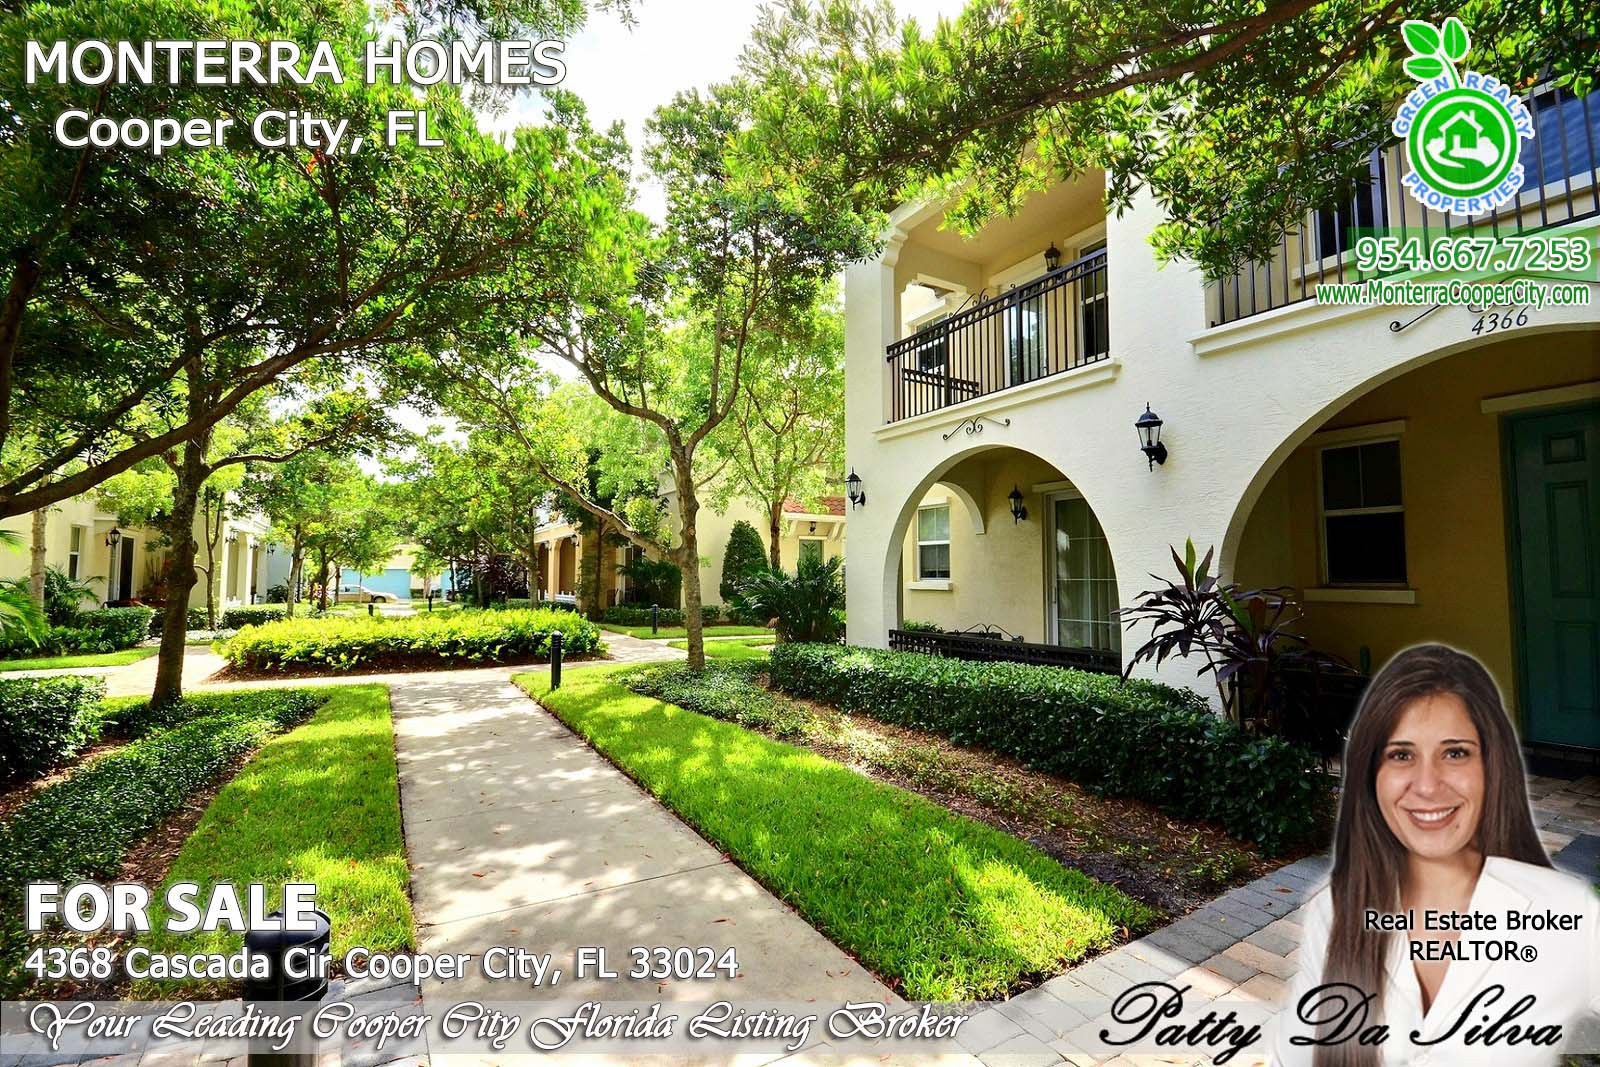 4368 Cascada Cir, Cooper City FL (4)